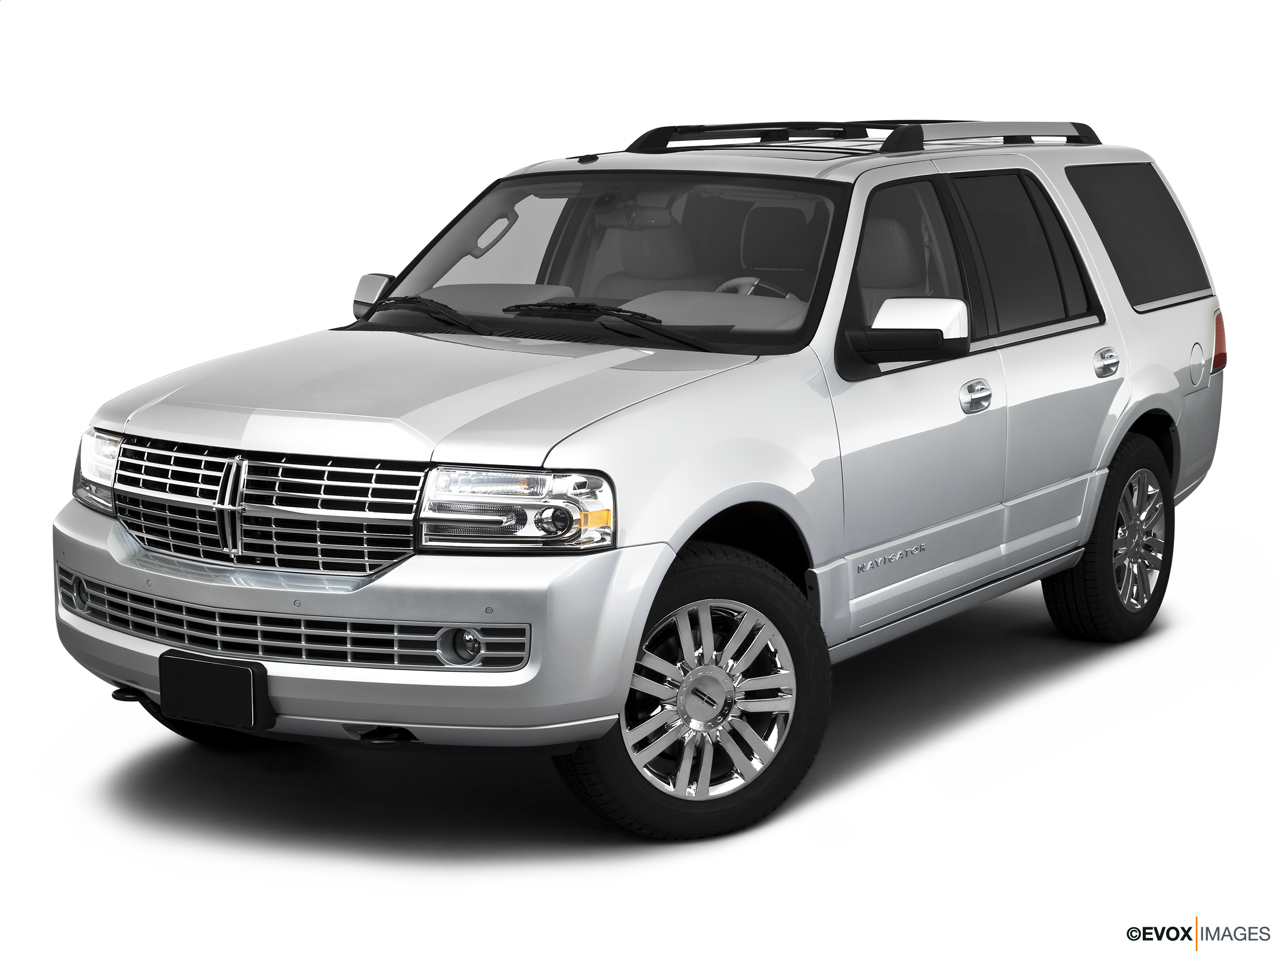 2010 Lincoln Navigator Base Front angle view.